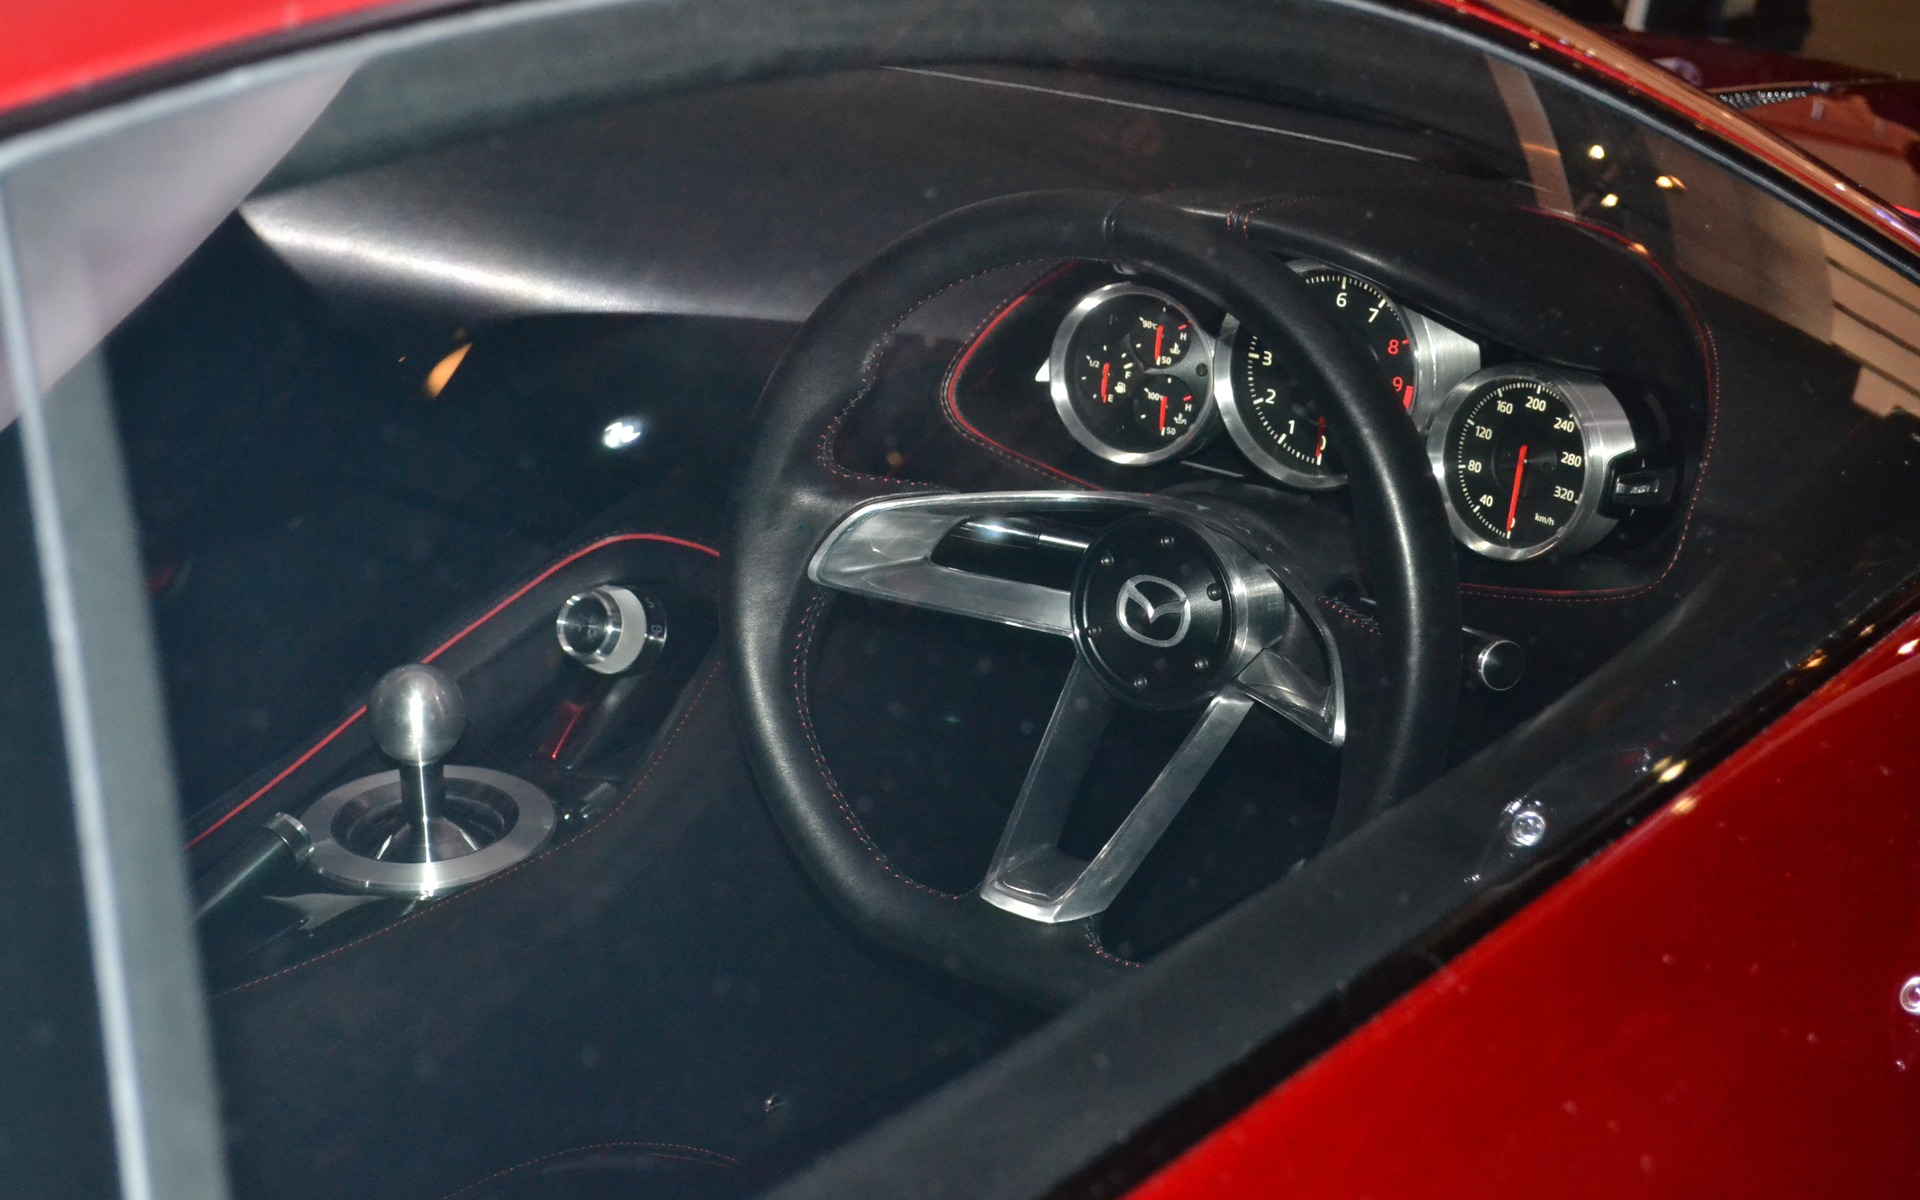 Mazda 3 2015 Interior >> Mazda RX-Vision Concept: The Rotary Engine is Back! - 2/14